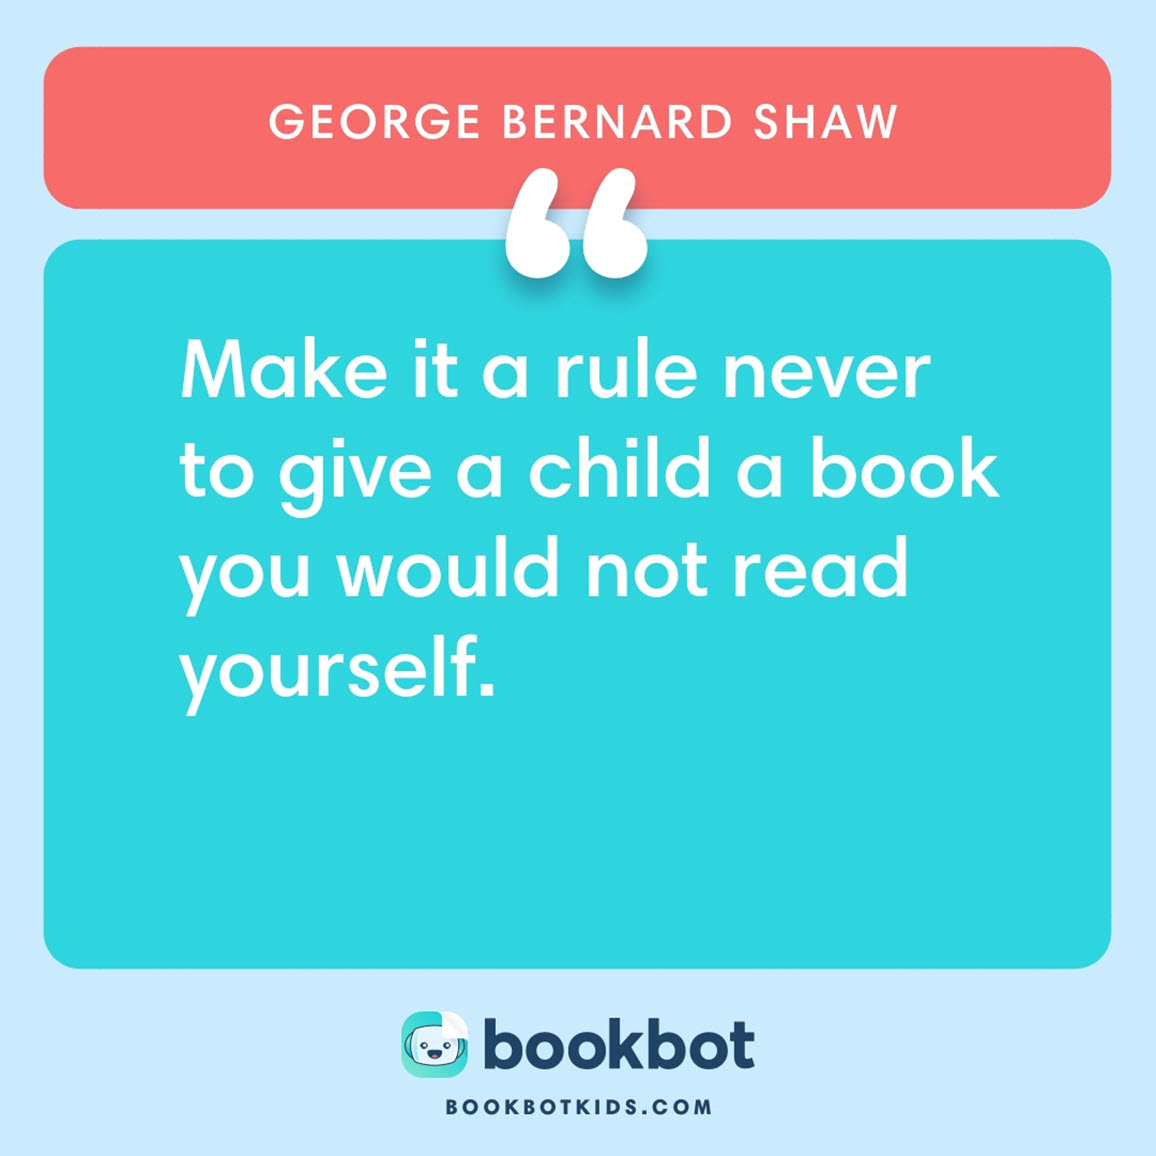 Make it a rule never to give a child a book you would not read yourself. – George Bernard Shaw